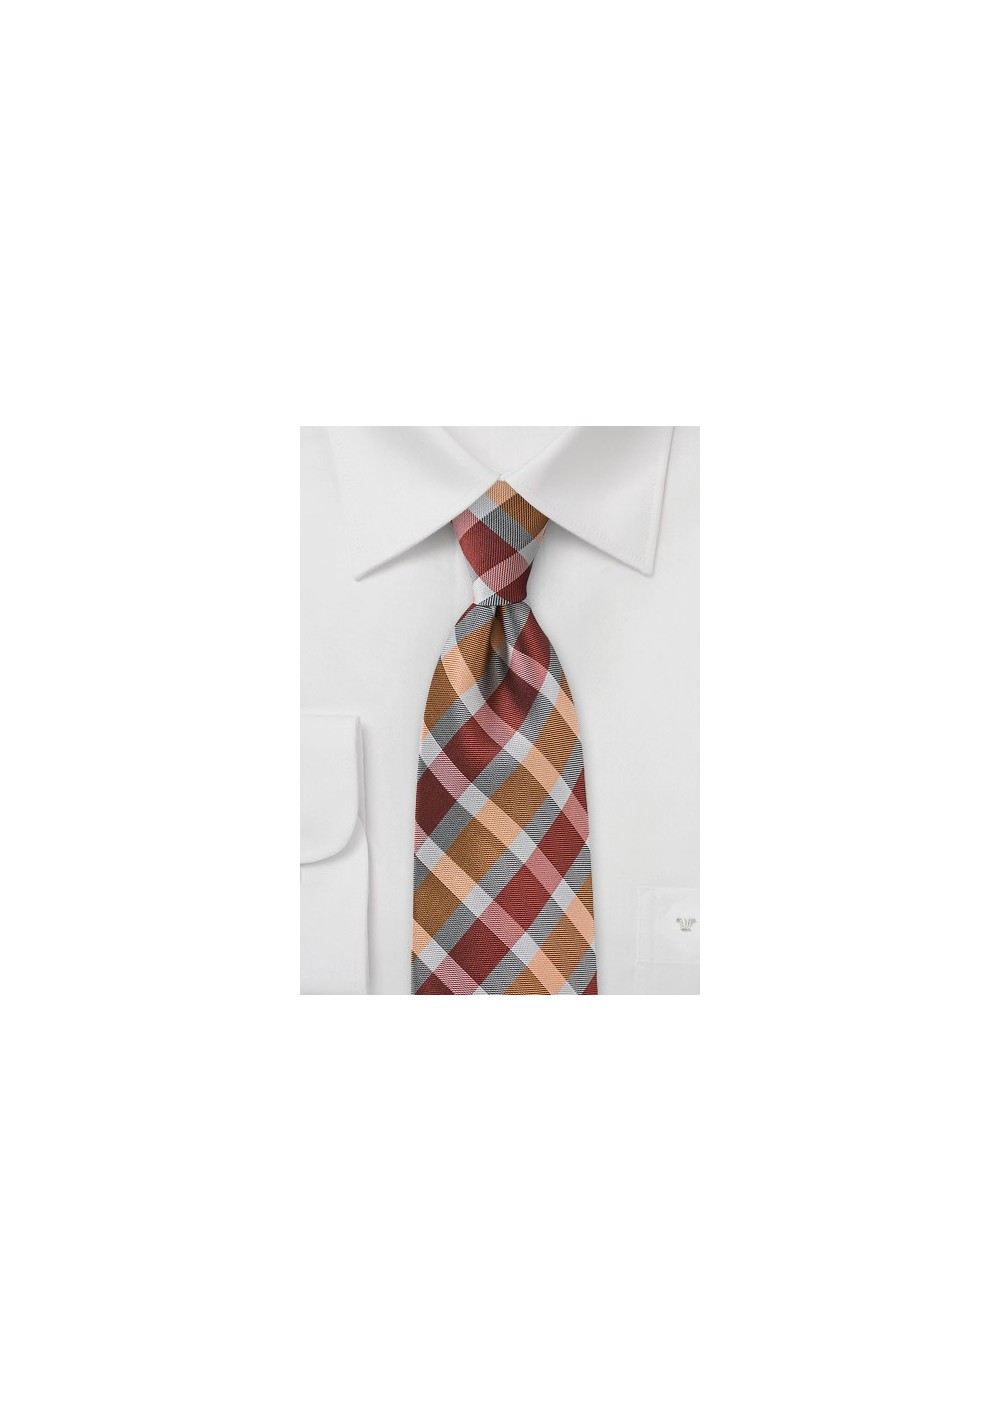 Modern Tie in Persimmon Oranges and Greys